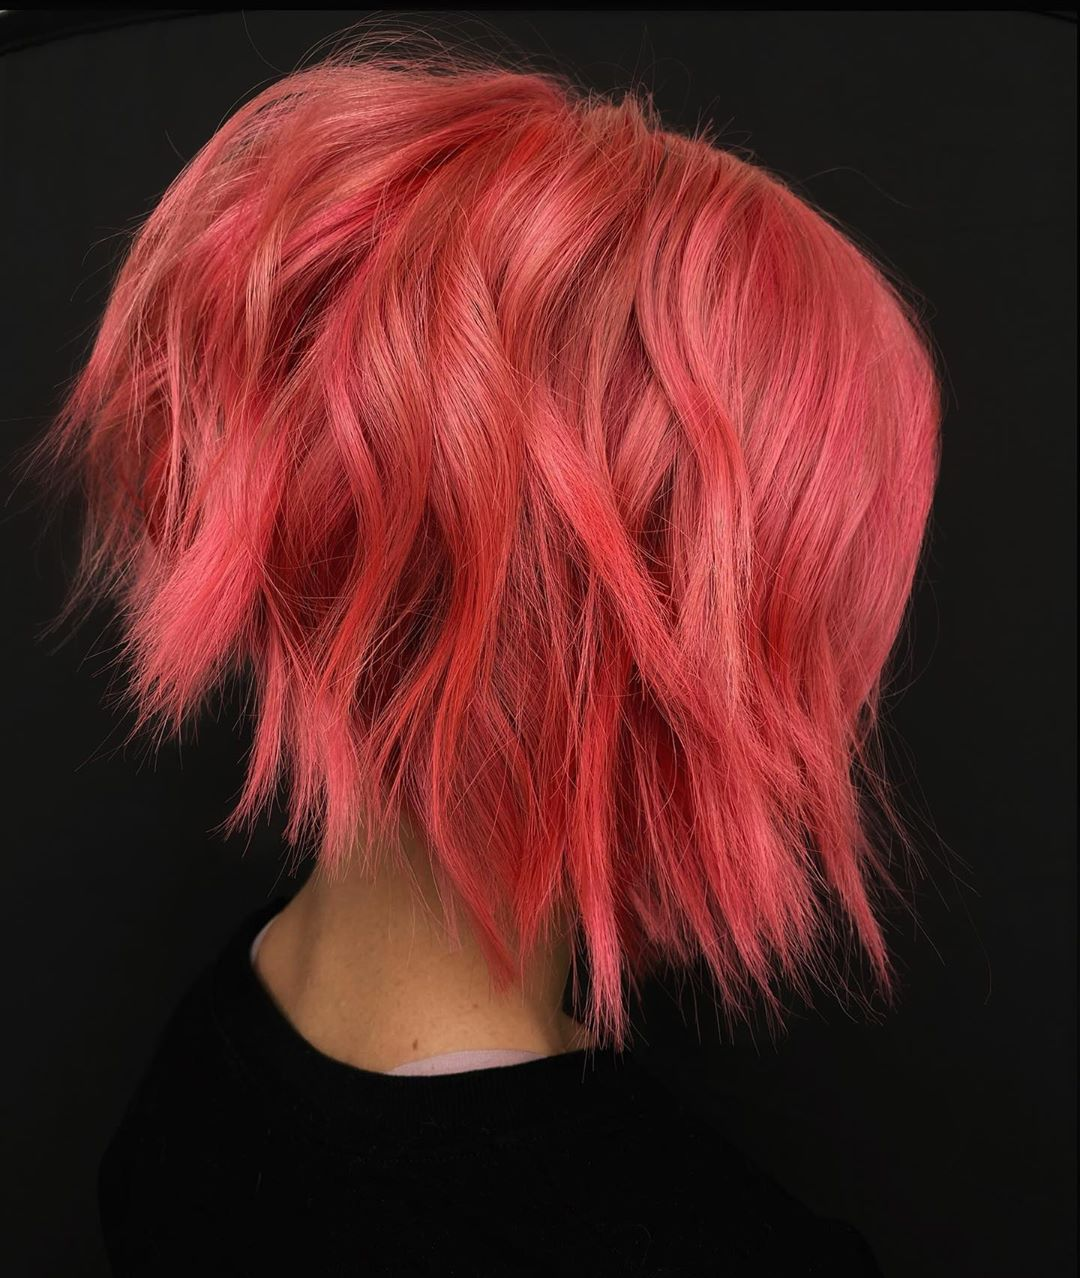 Neon Hair Color Trend for Fall